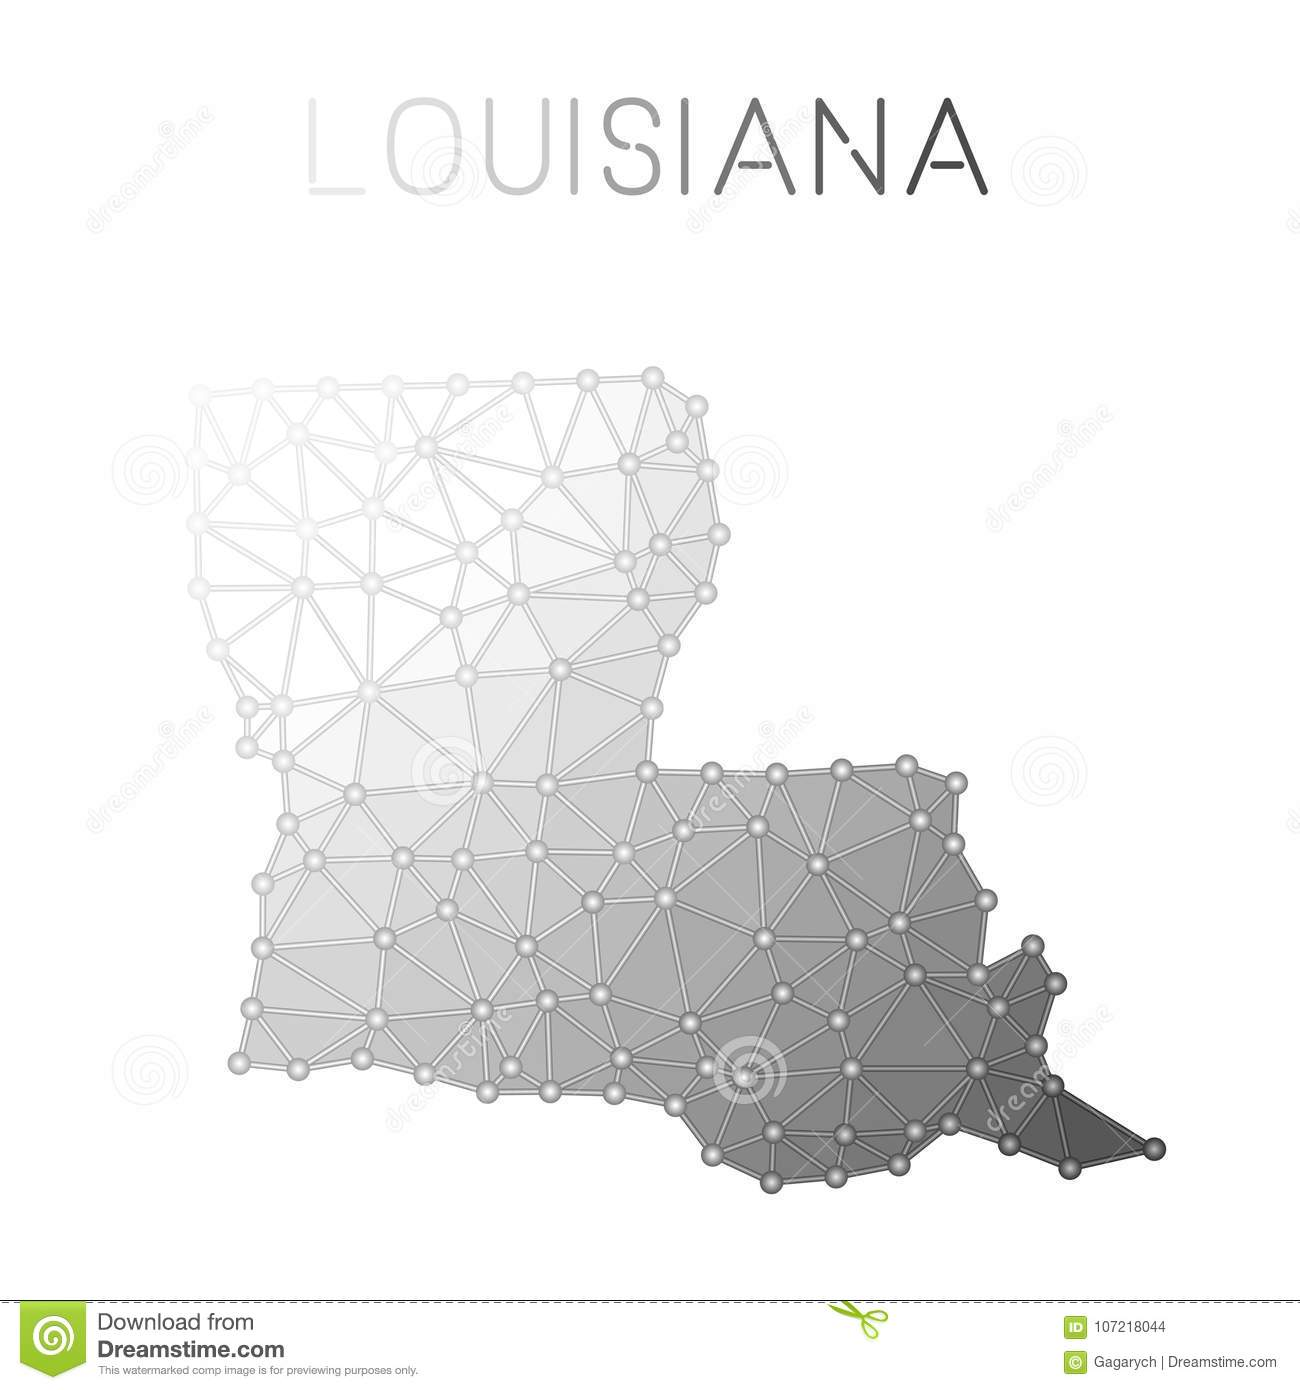 Louisiana Polygonal Vector Map. Stock Vector - Illustration of ...